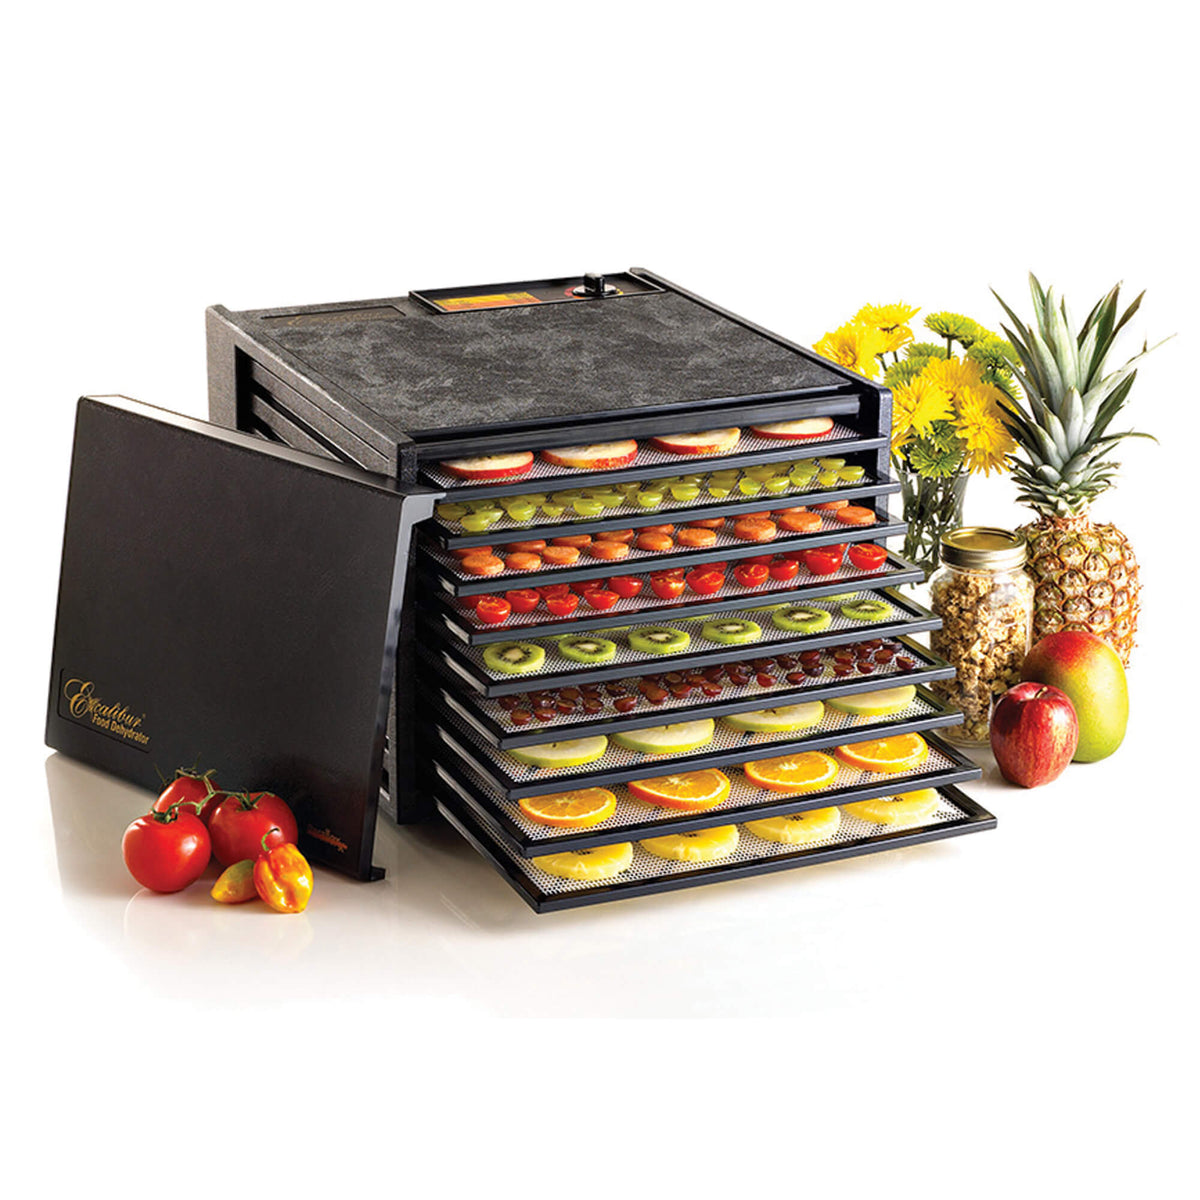 Excalibur 4900B 9 tray dehydrator with door propped to the side and food on the trays.